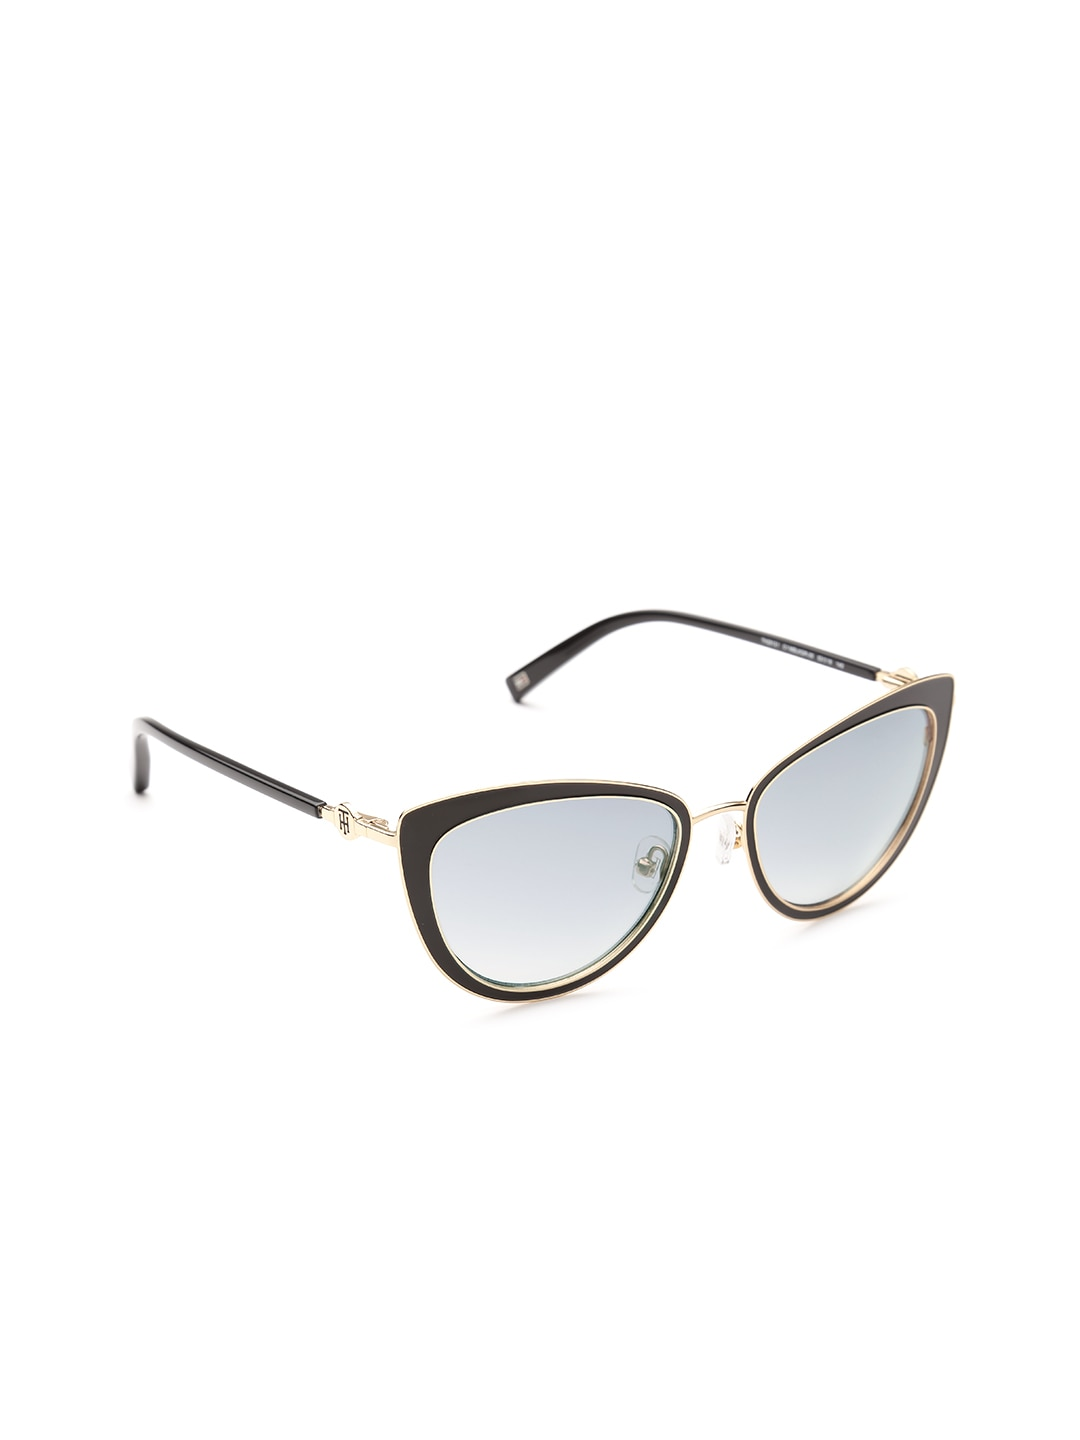 45e56e272eb7 Tommy Hilfiger Sunglasses - Buy Tommy Hilfiger Sunglasses online in India